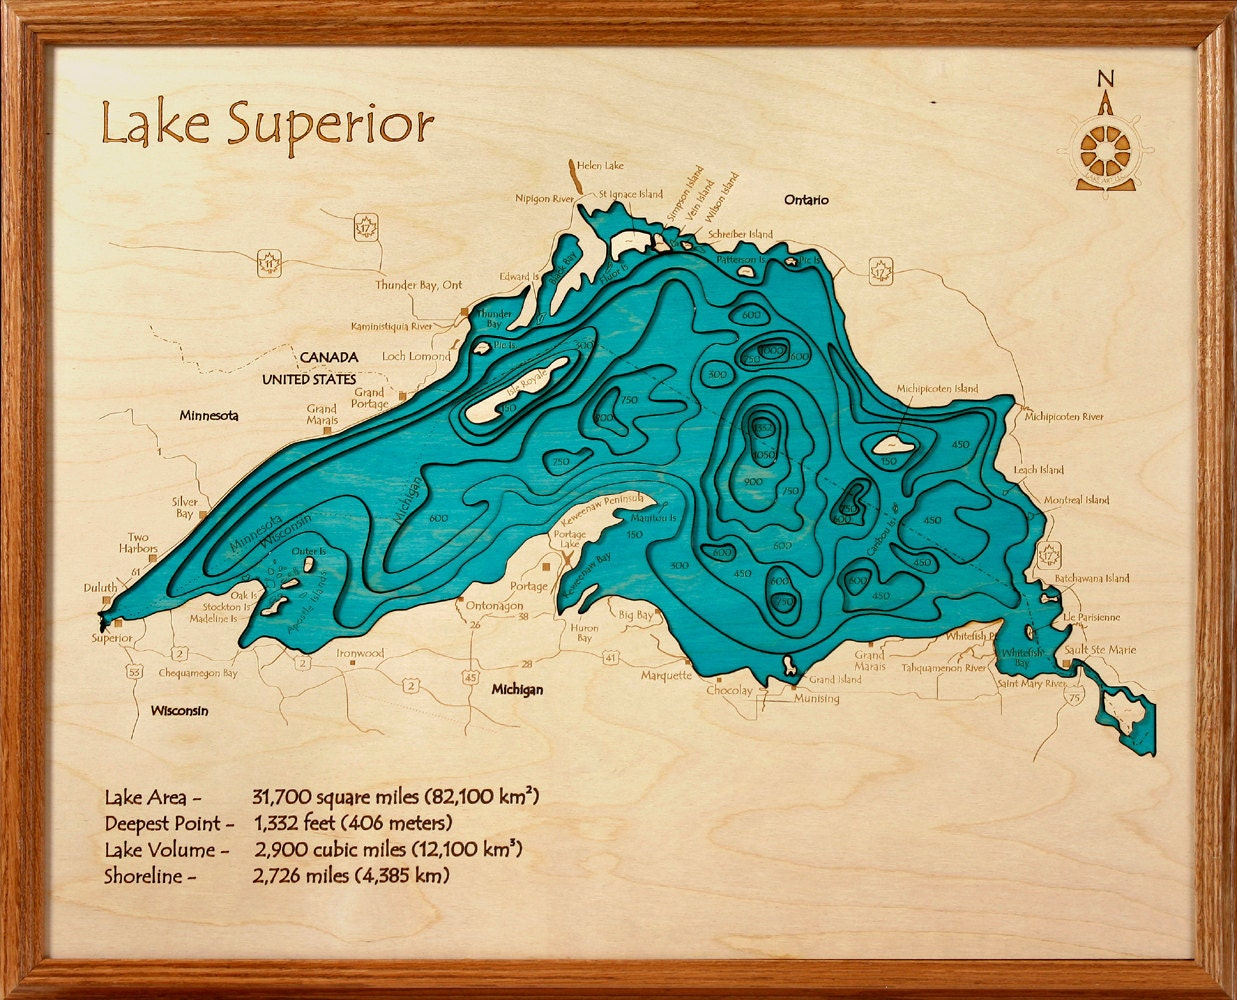 Framed Nautical Chart Lake Superior Collection: 24x30 3-D Wall Art by ...